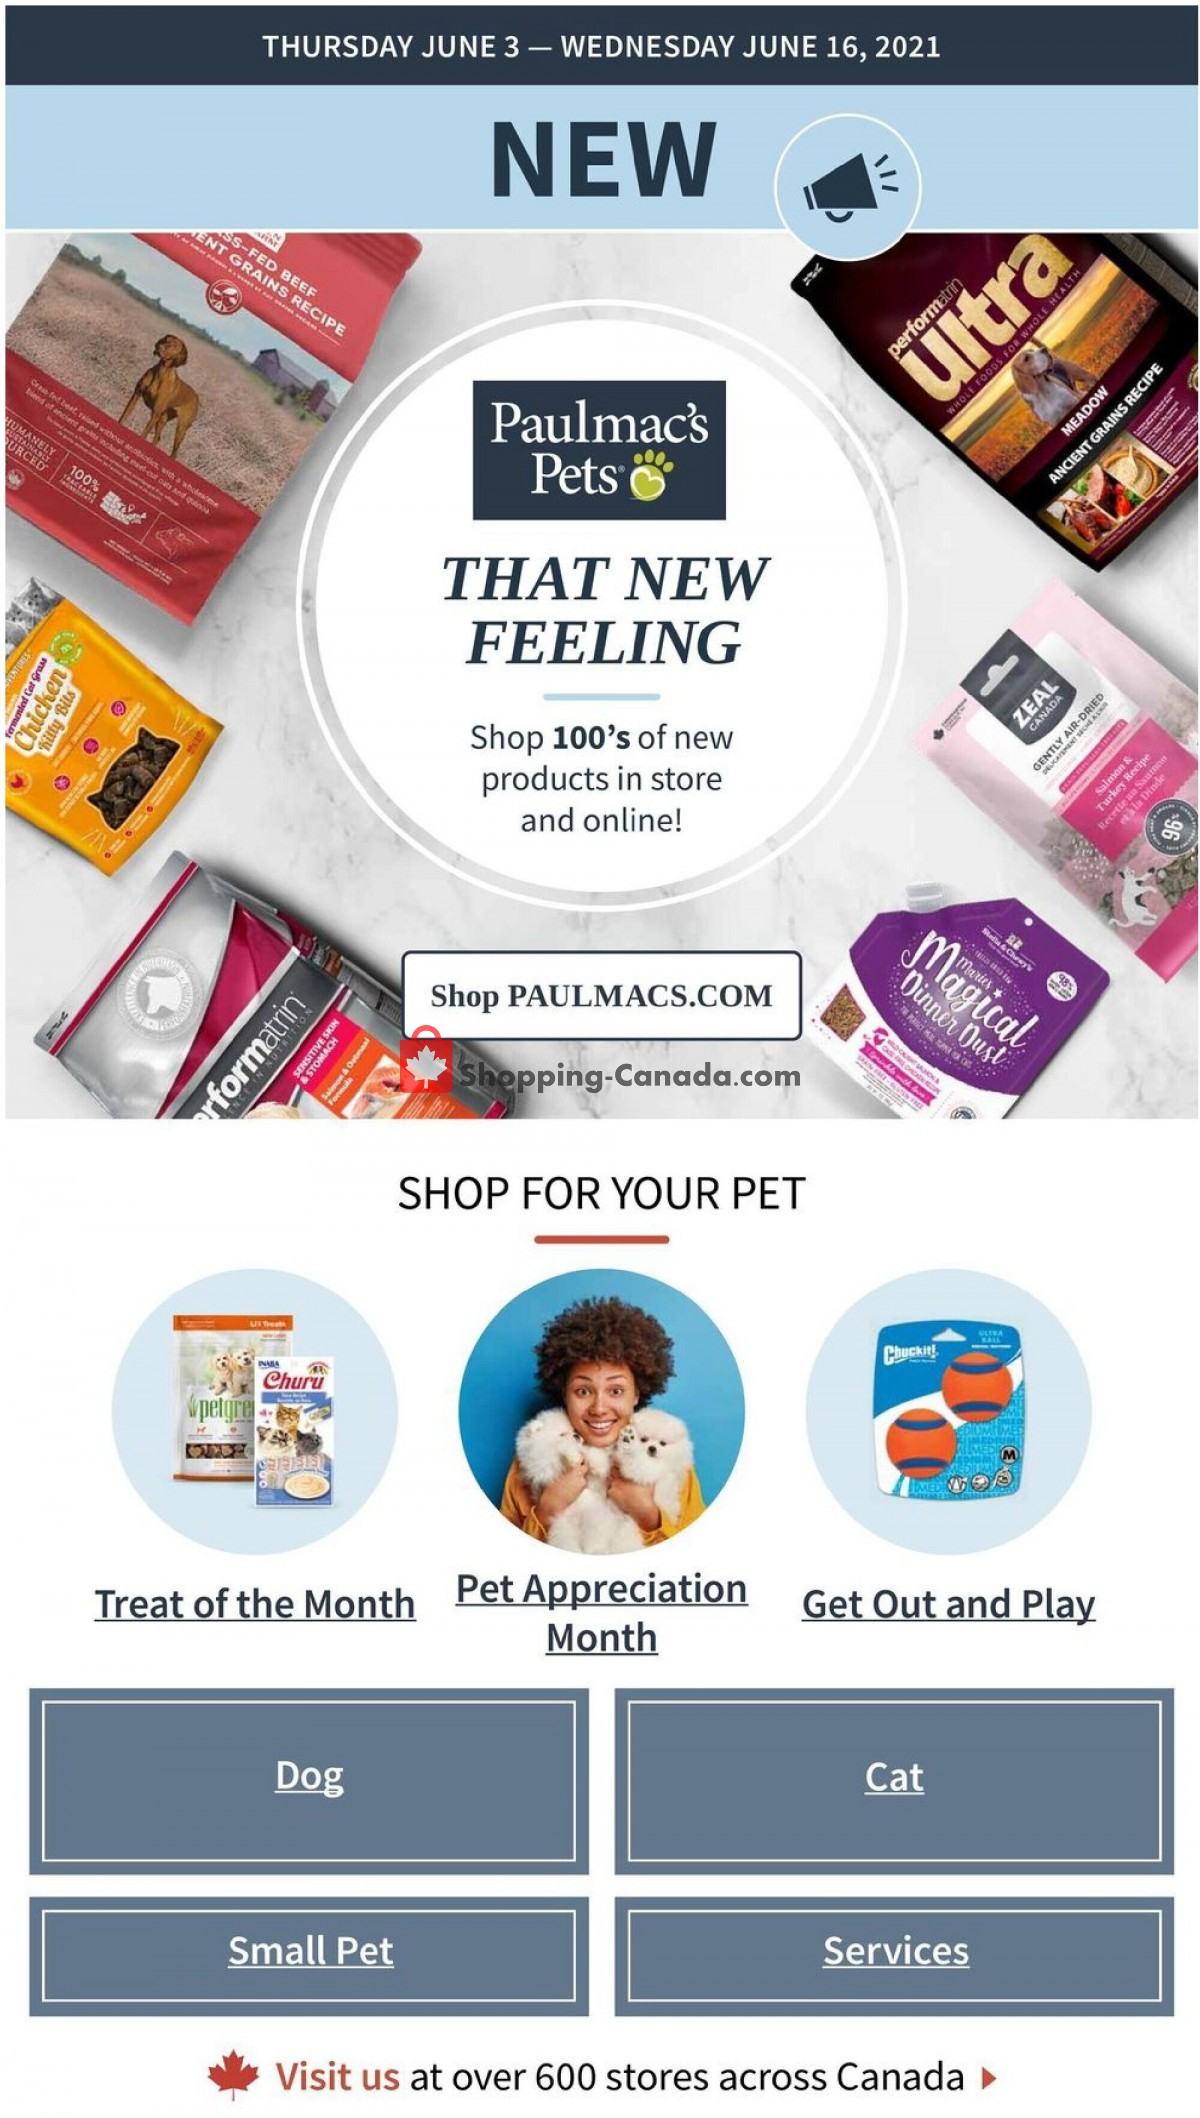 Flyer Paulmac's Pets Canada - from Thursday June 3, 2021 to Wednesday June 16, 2021